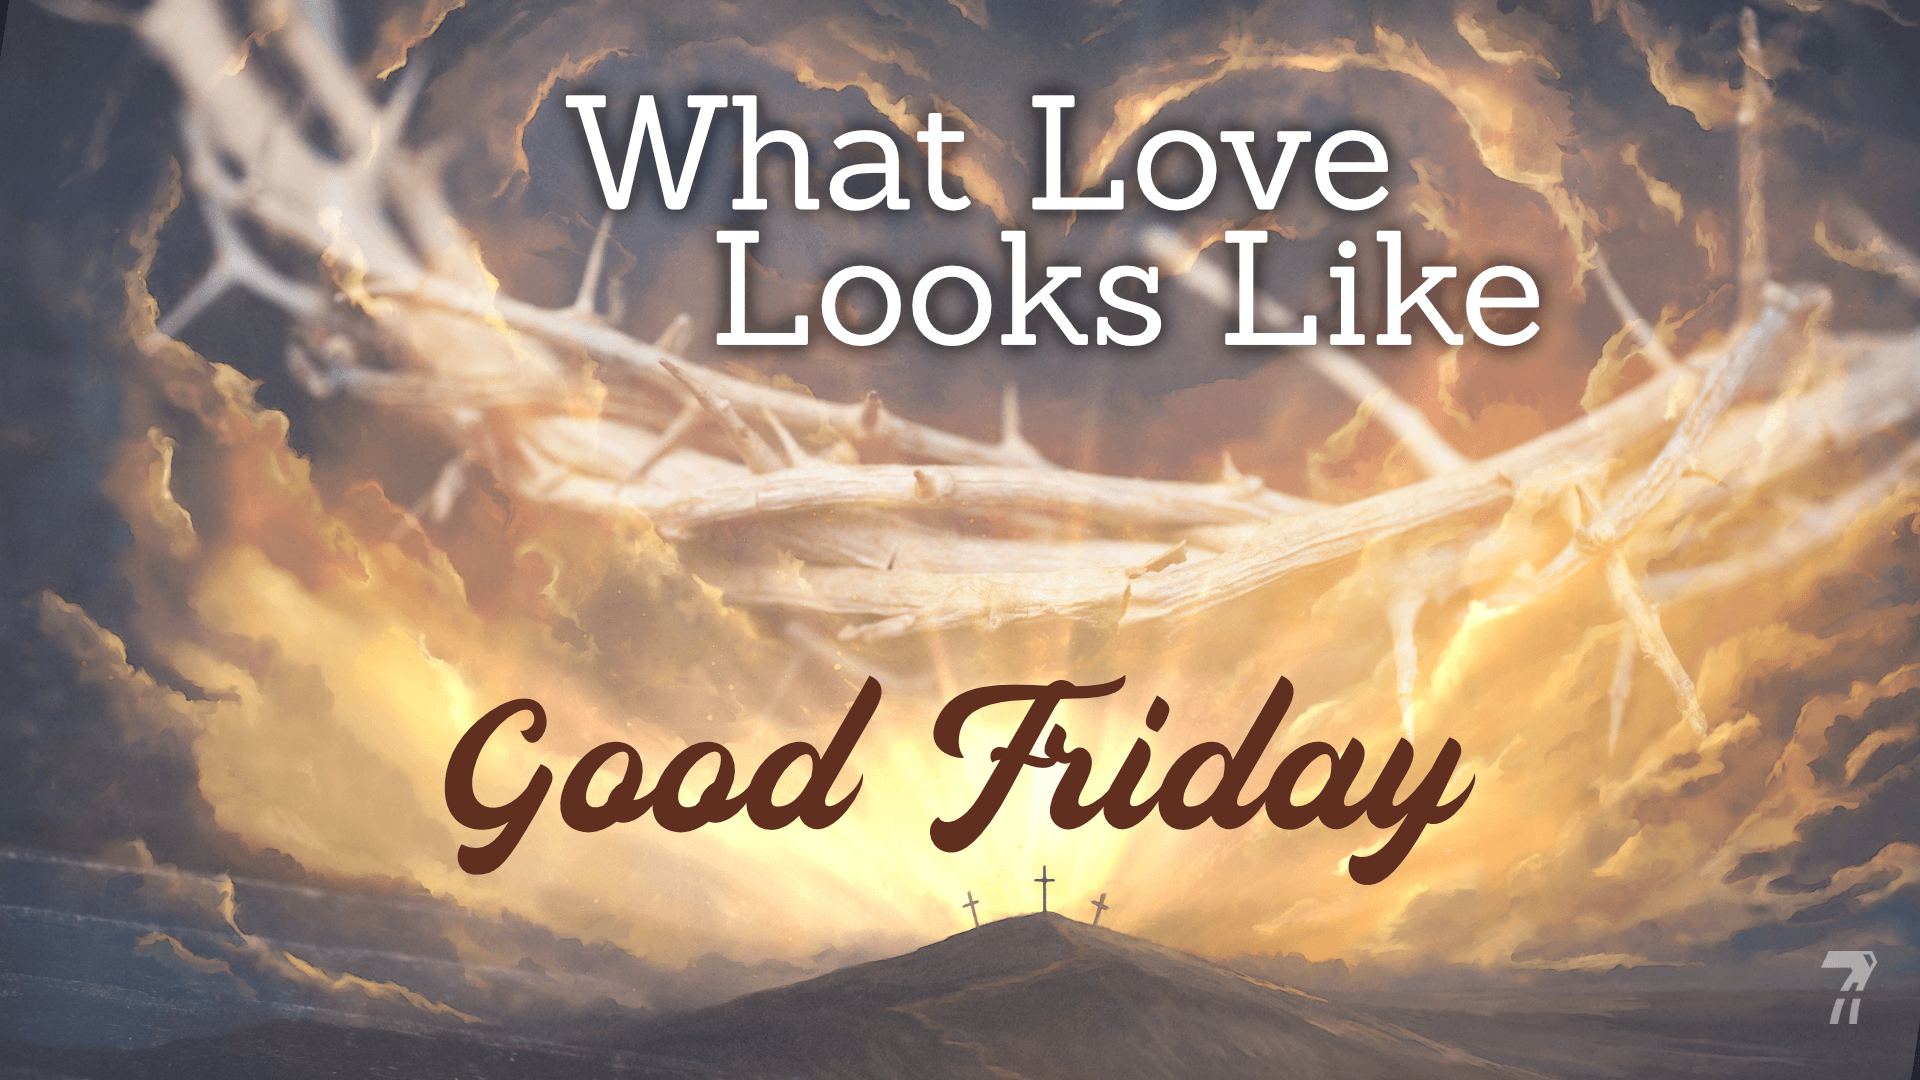 GoodFriday 2019 – What Love Looks Like